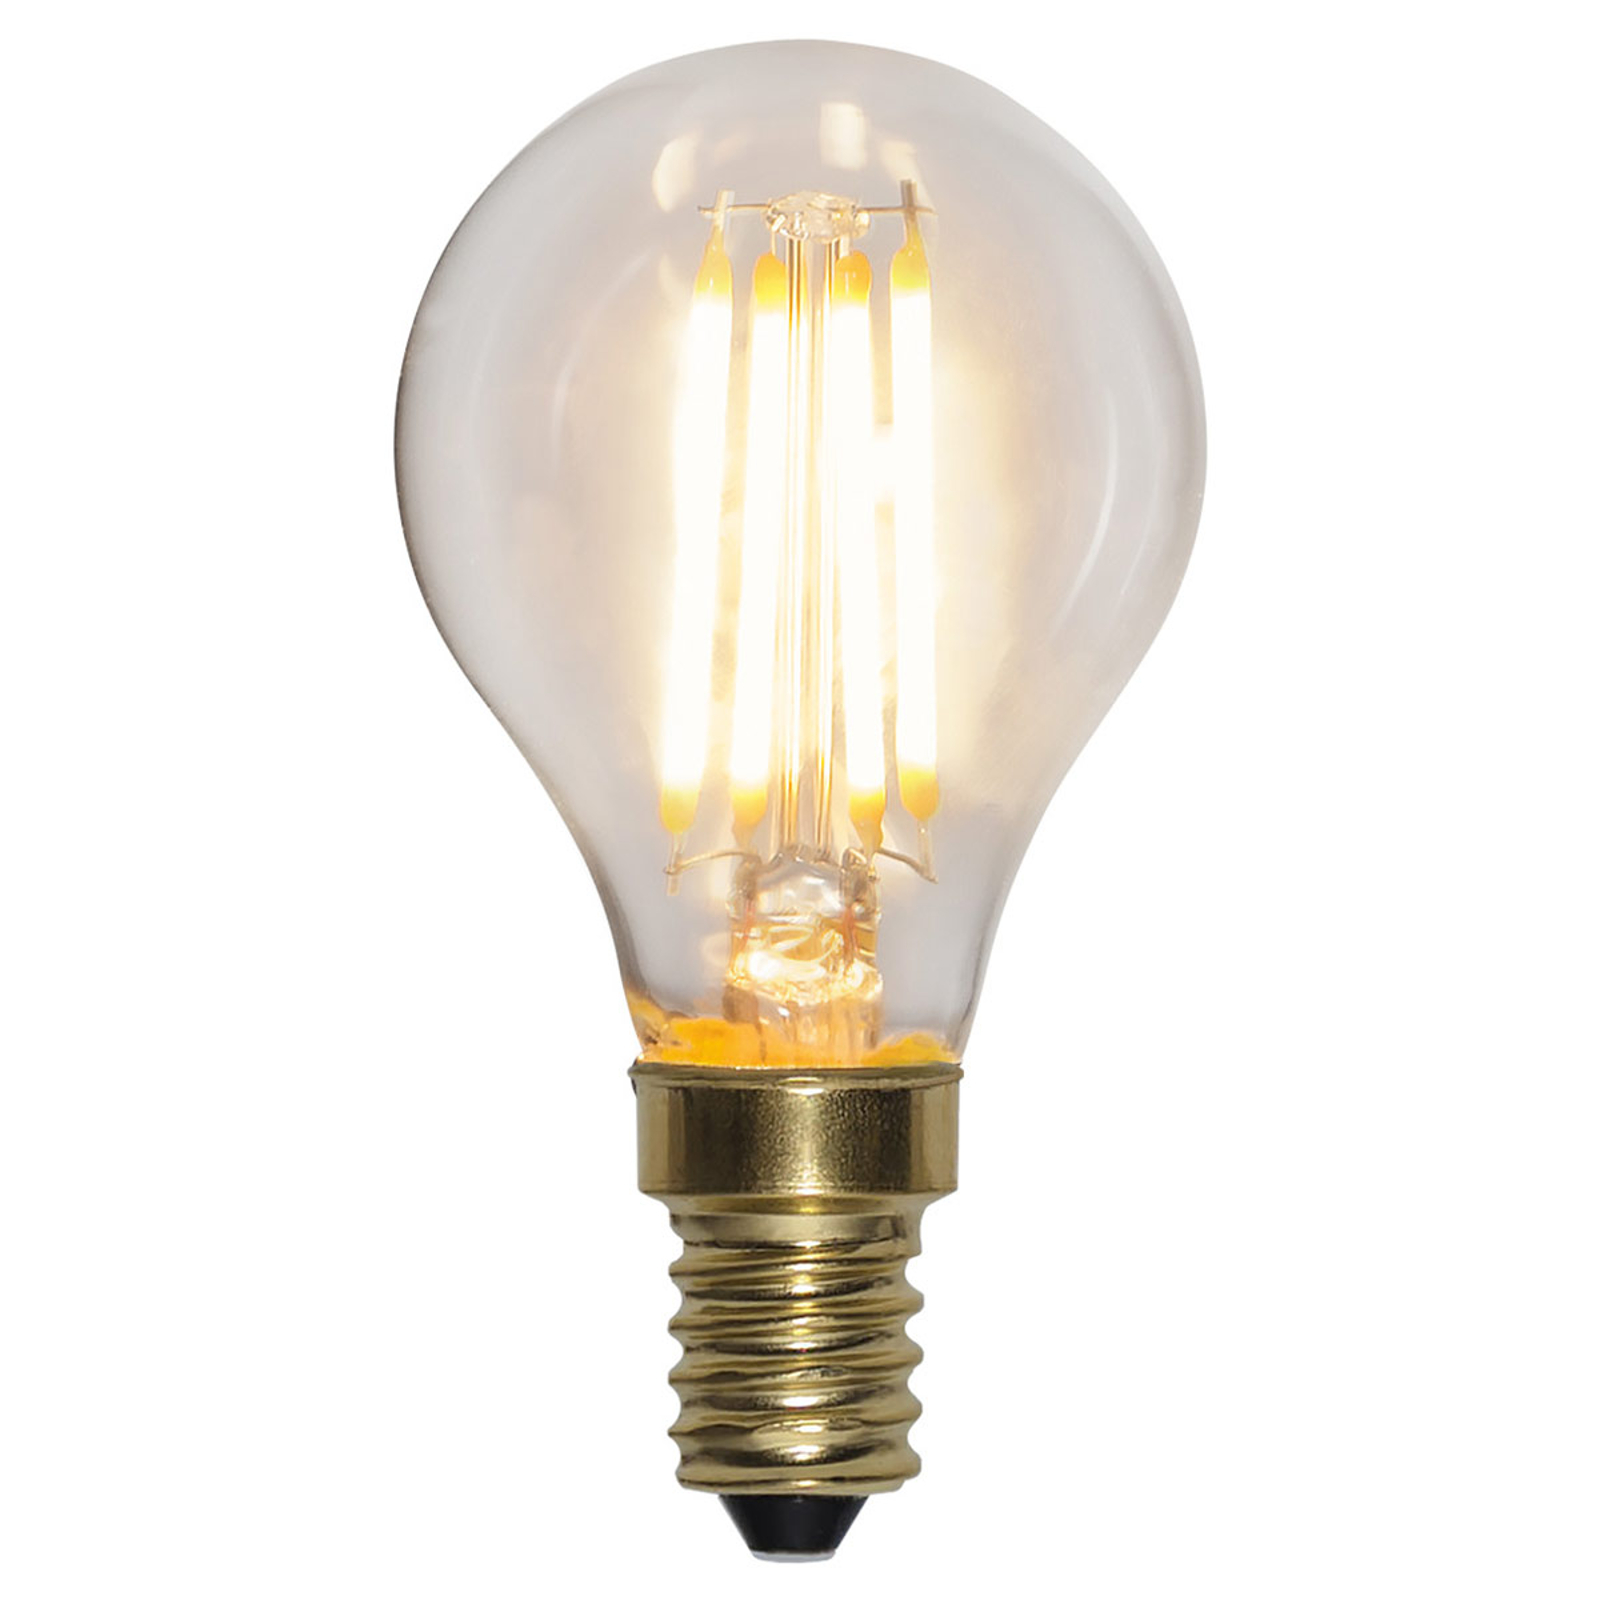 Ampoule LED E14 4W Soft Glow 2100K 3-Step dimming